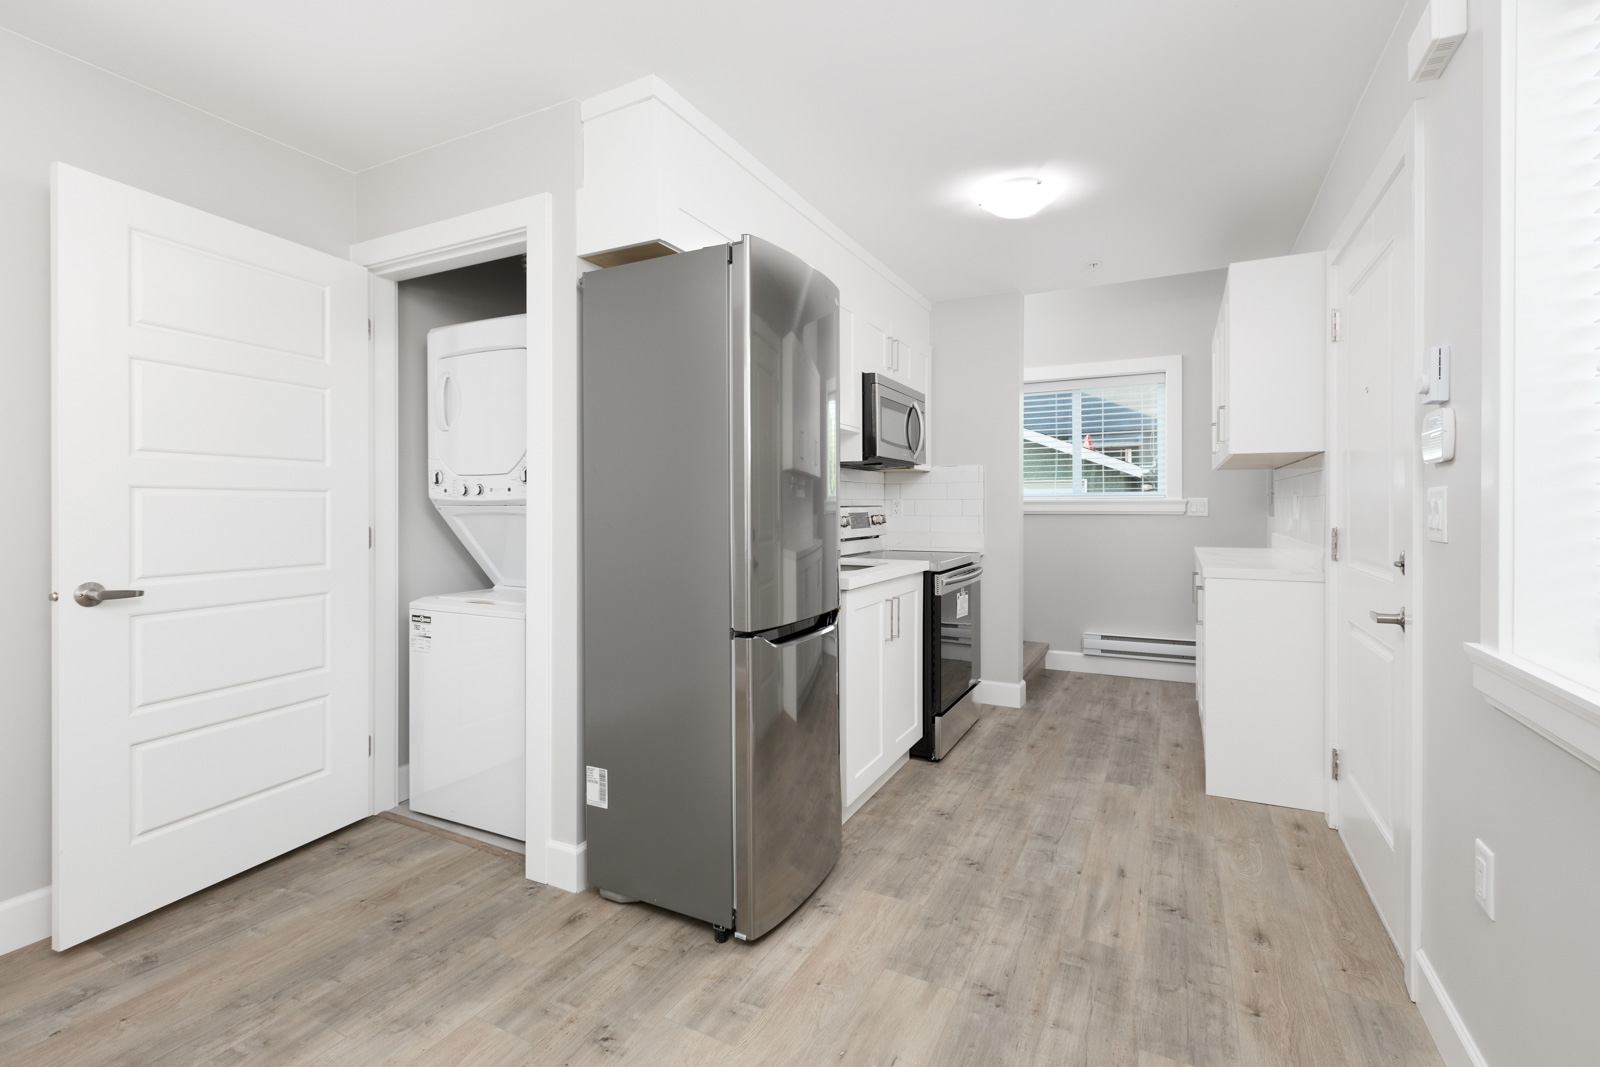 View of washer and dryer closet next to kitchen in Vancouver rental with stainless steel appliances in Vancouver unfurnished rental home..